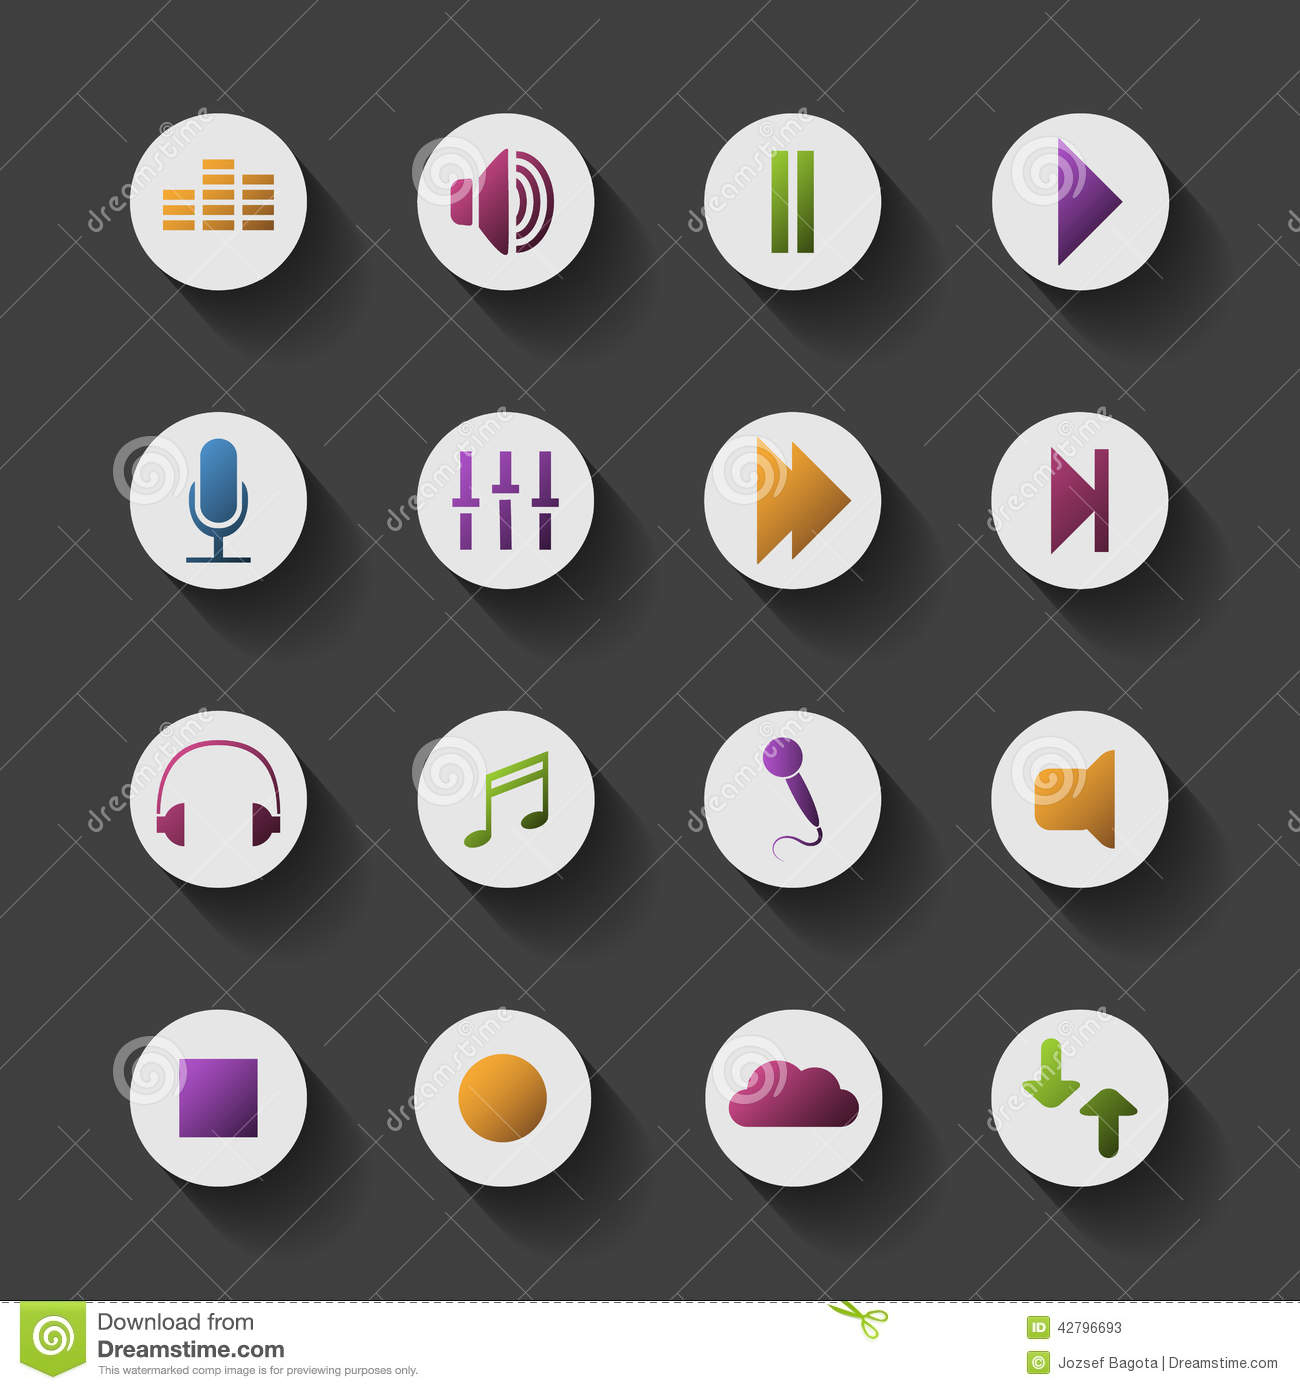 Colorful Media Related Icon Set Design